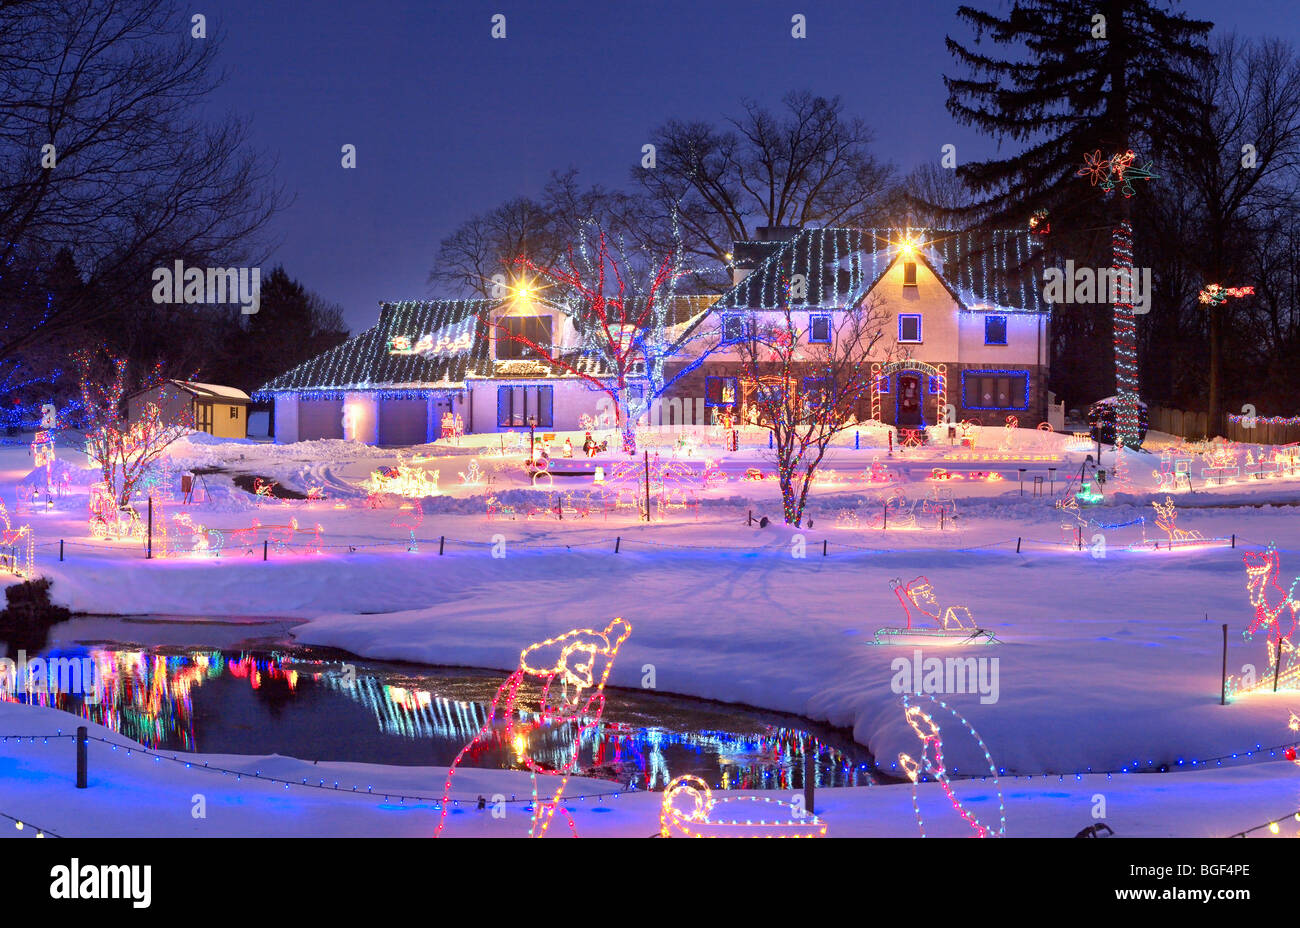 christmas lights on house with snow at night philadelphia usa